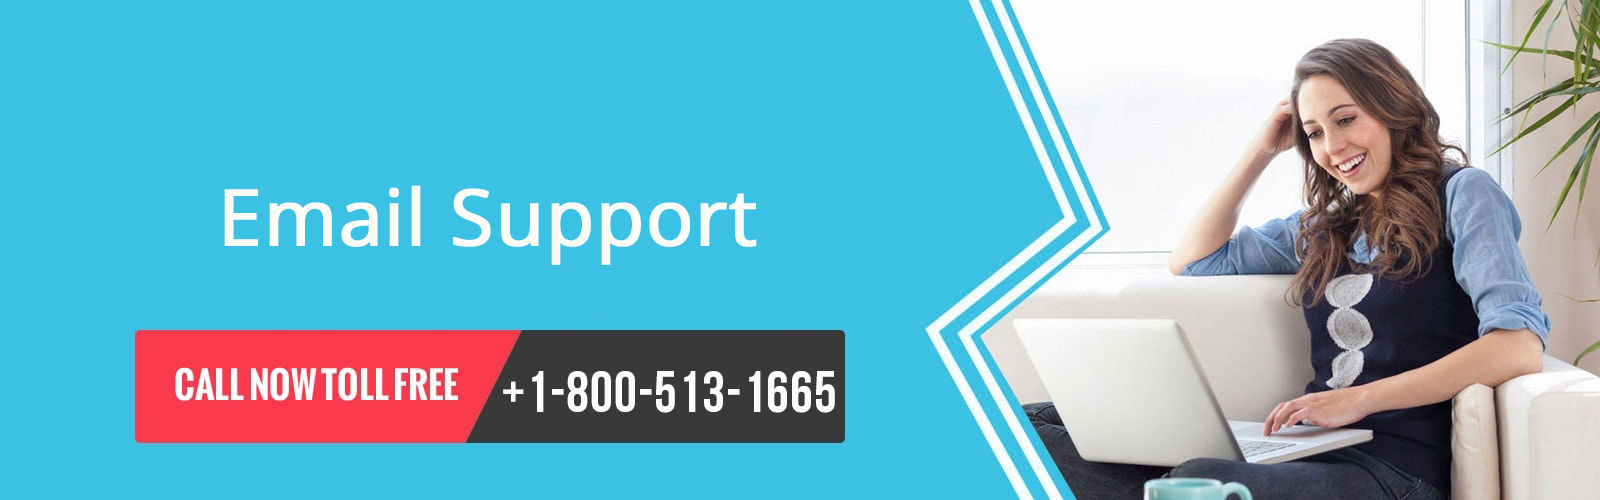 AOL Email Technical Support Number +1-800-513-1665 | 800 Number for AOL